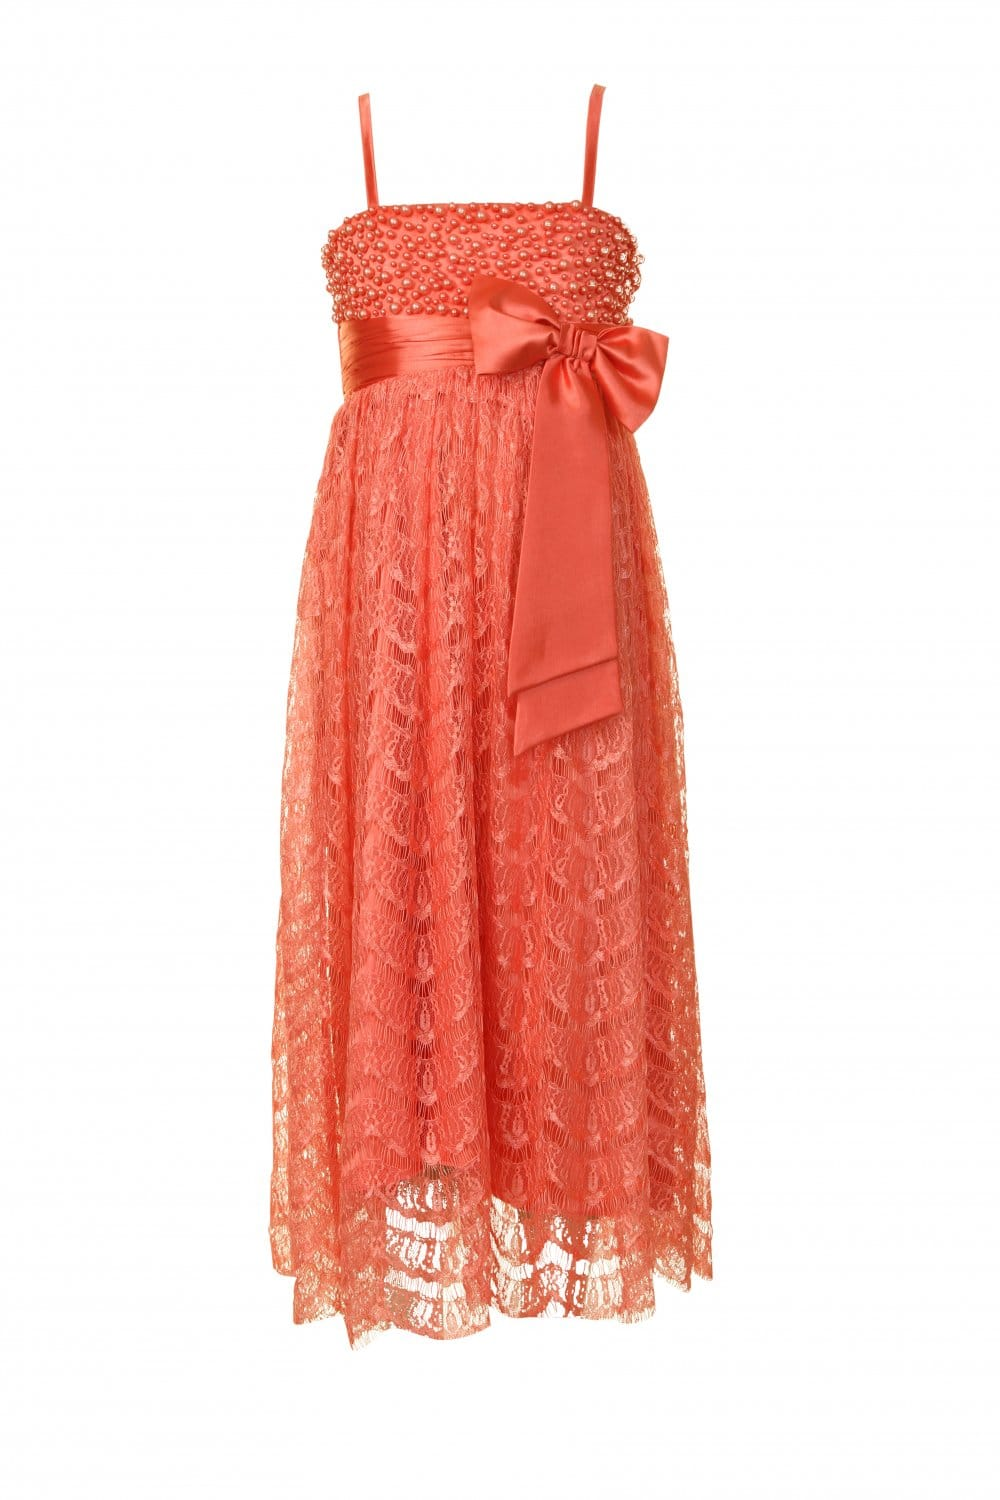 Little Misdress Coral Bead Embellished Bow Party Dress